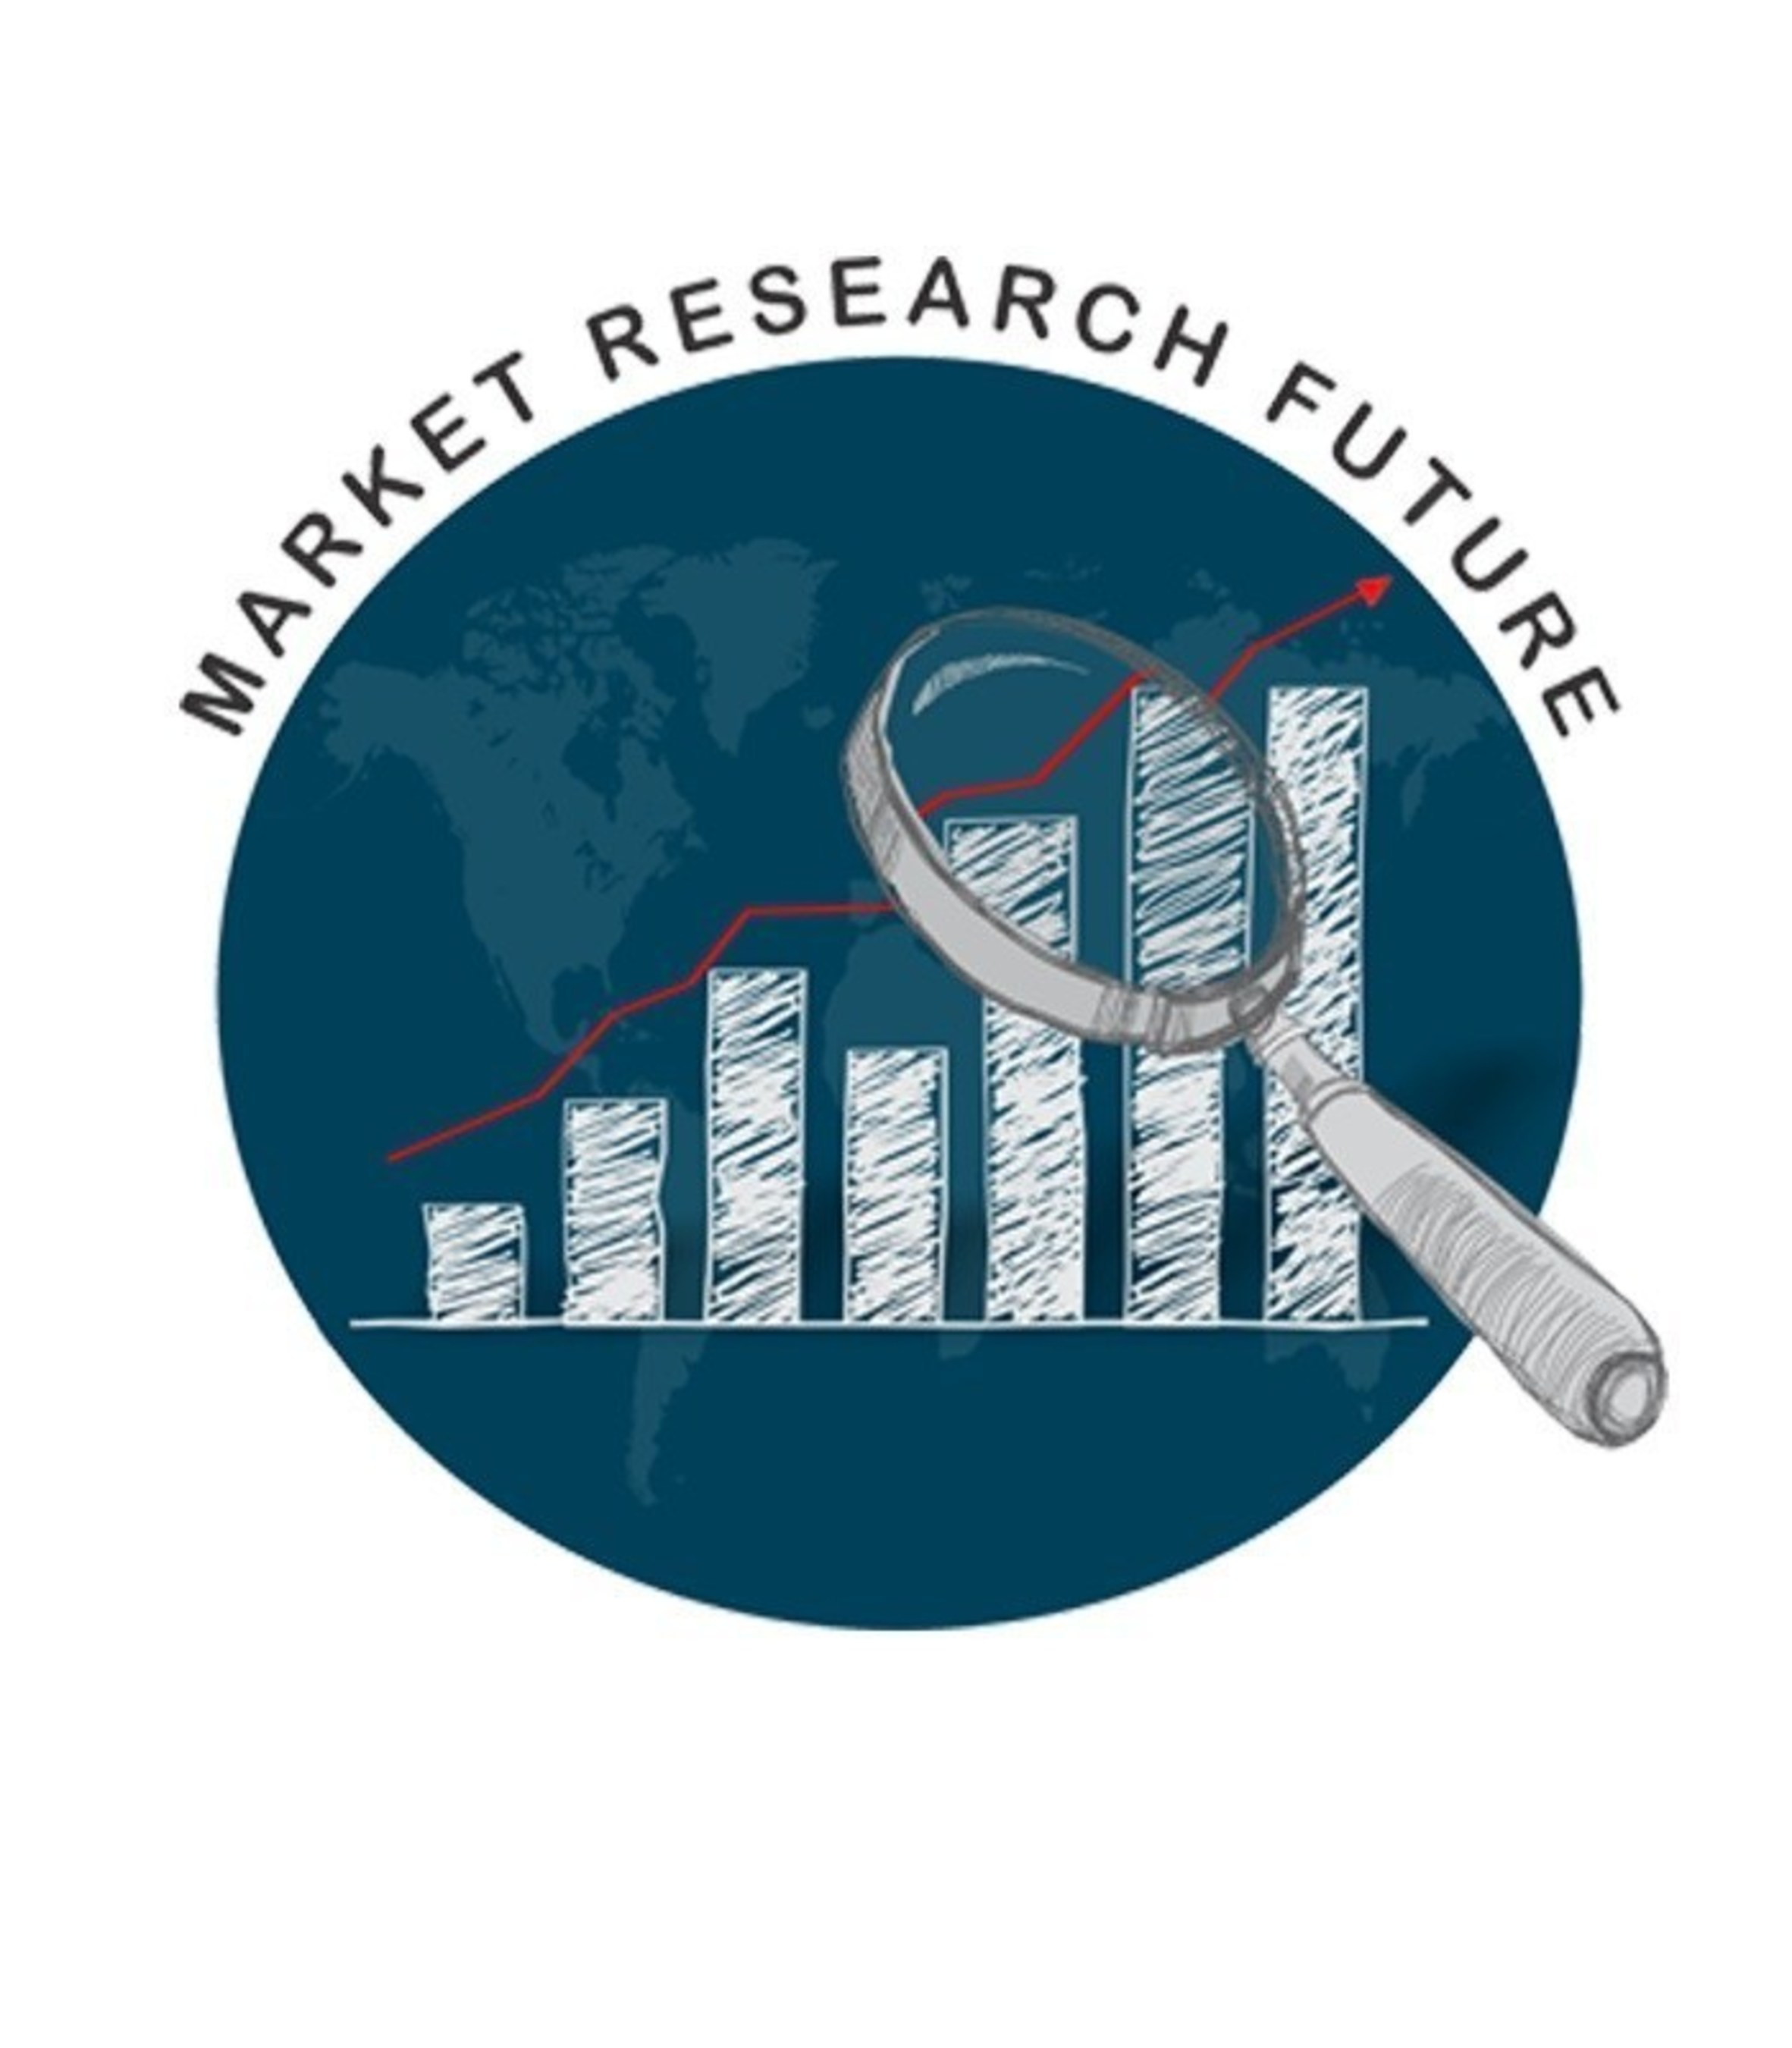 Surface Inspection Market Report by Type, Devices and Applications Analysis and Forecasts to 2027